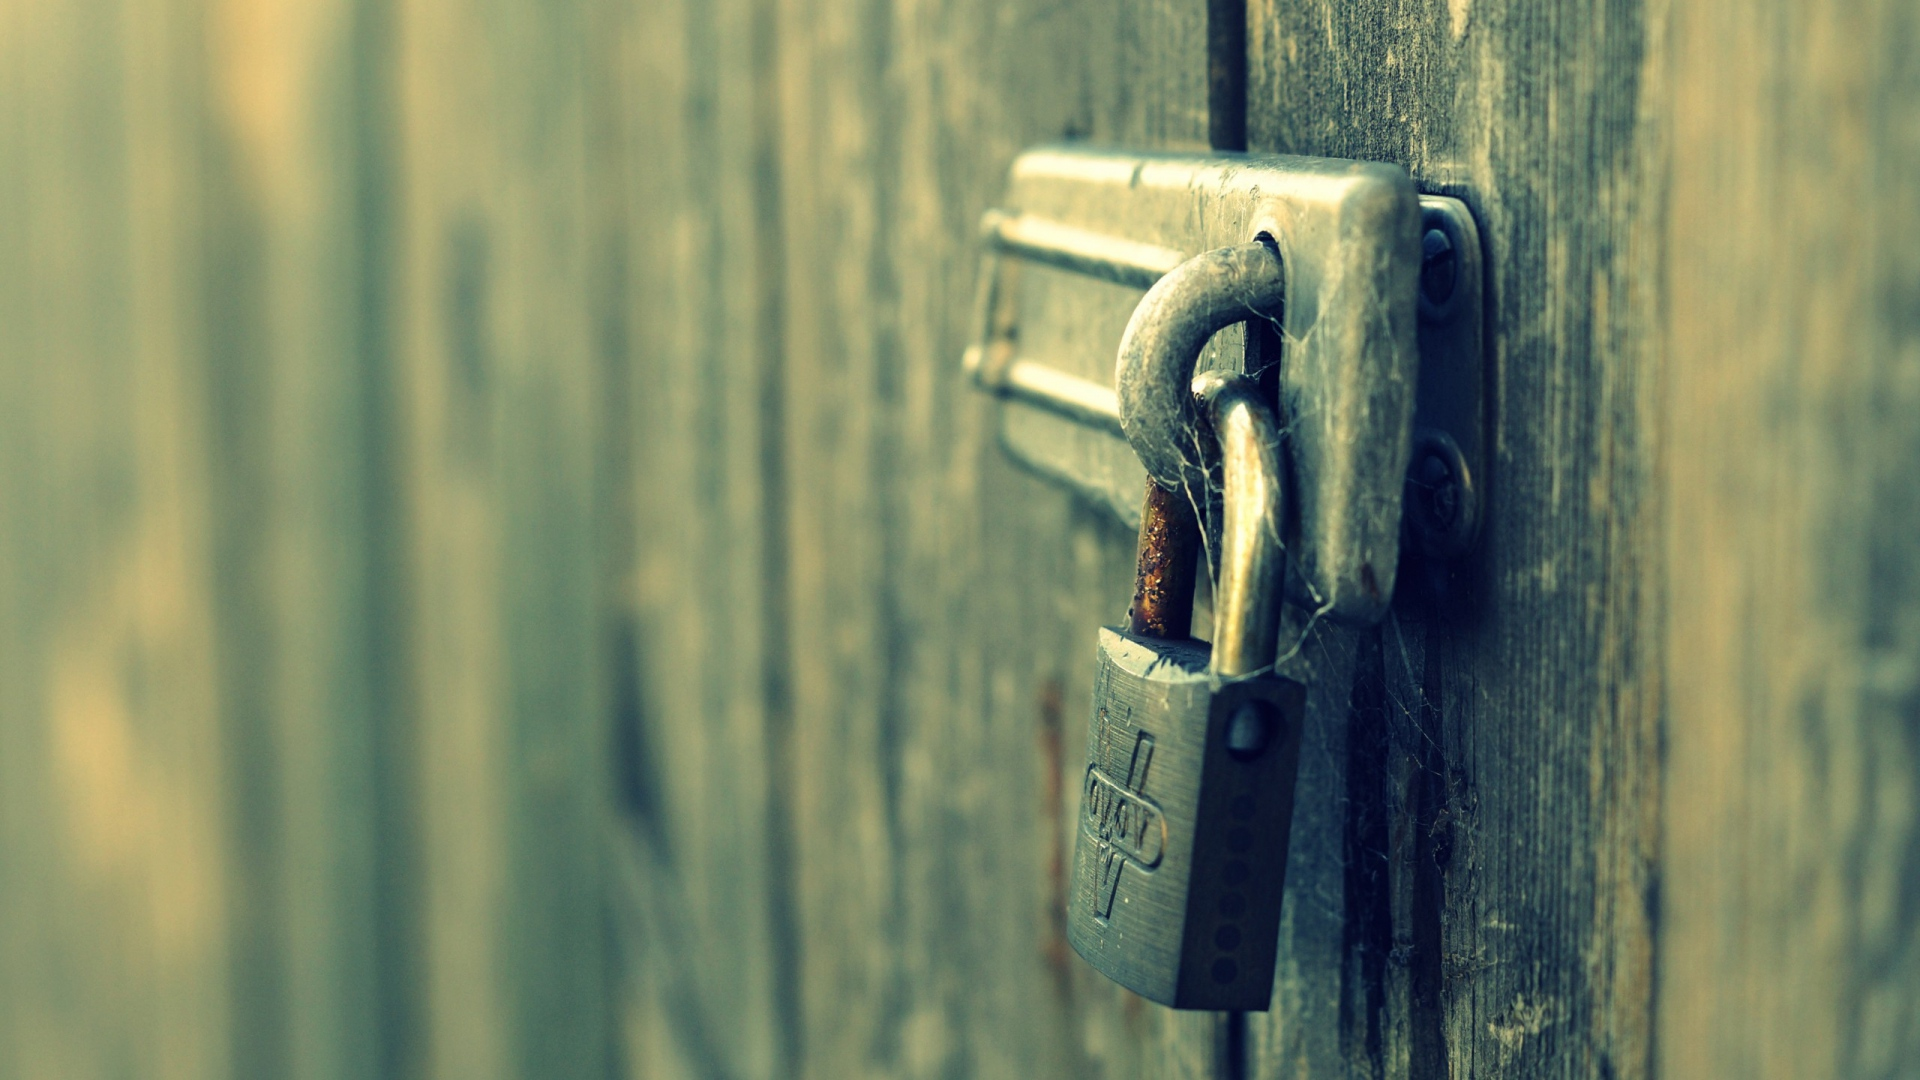 Le Meilleur Download Wallpaper 1920X1080 Door Lock Closed Full Hd Ce Mois Ci